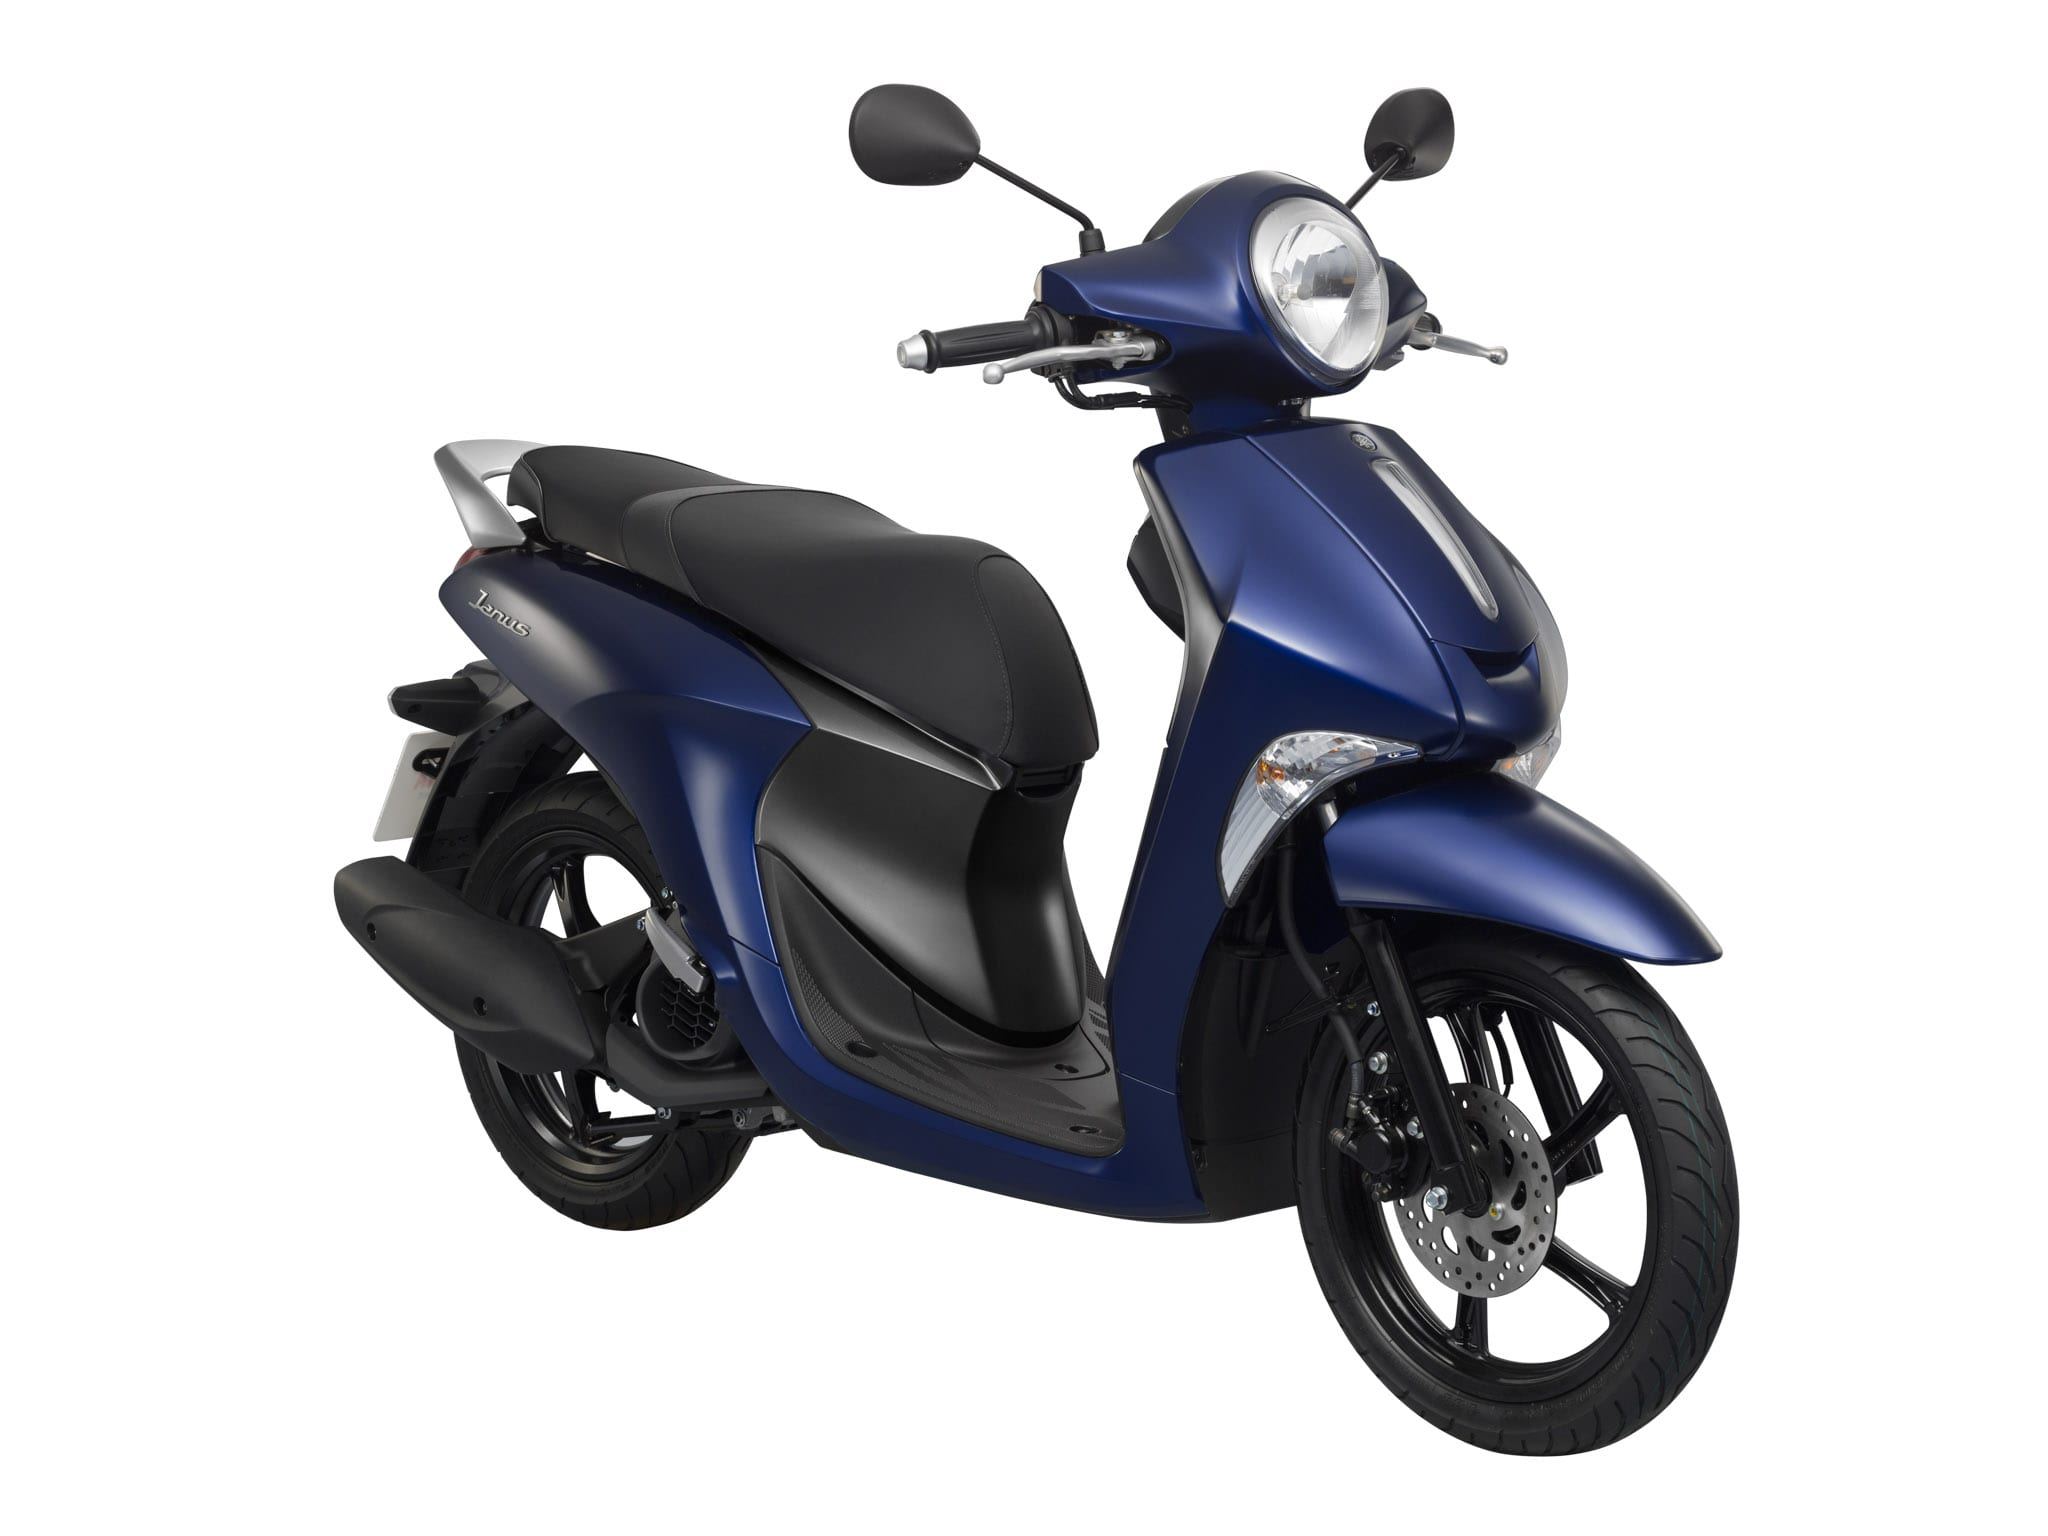 Yamaha Scooter Idle Stop Technology